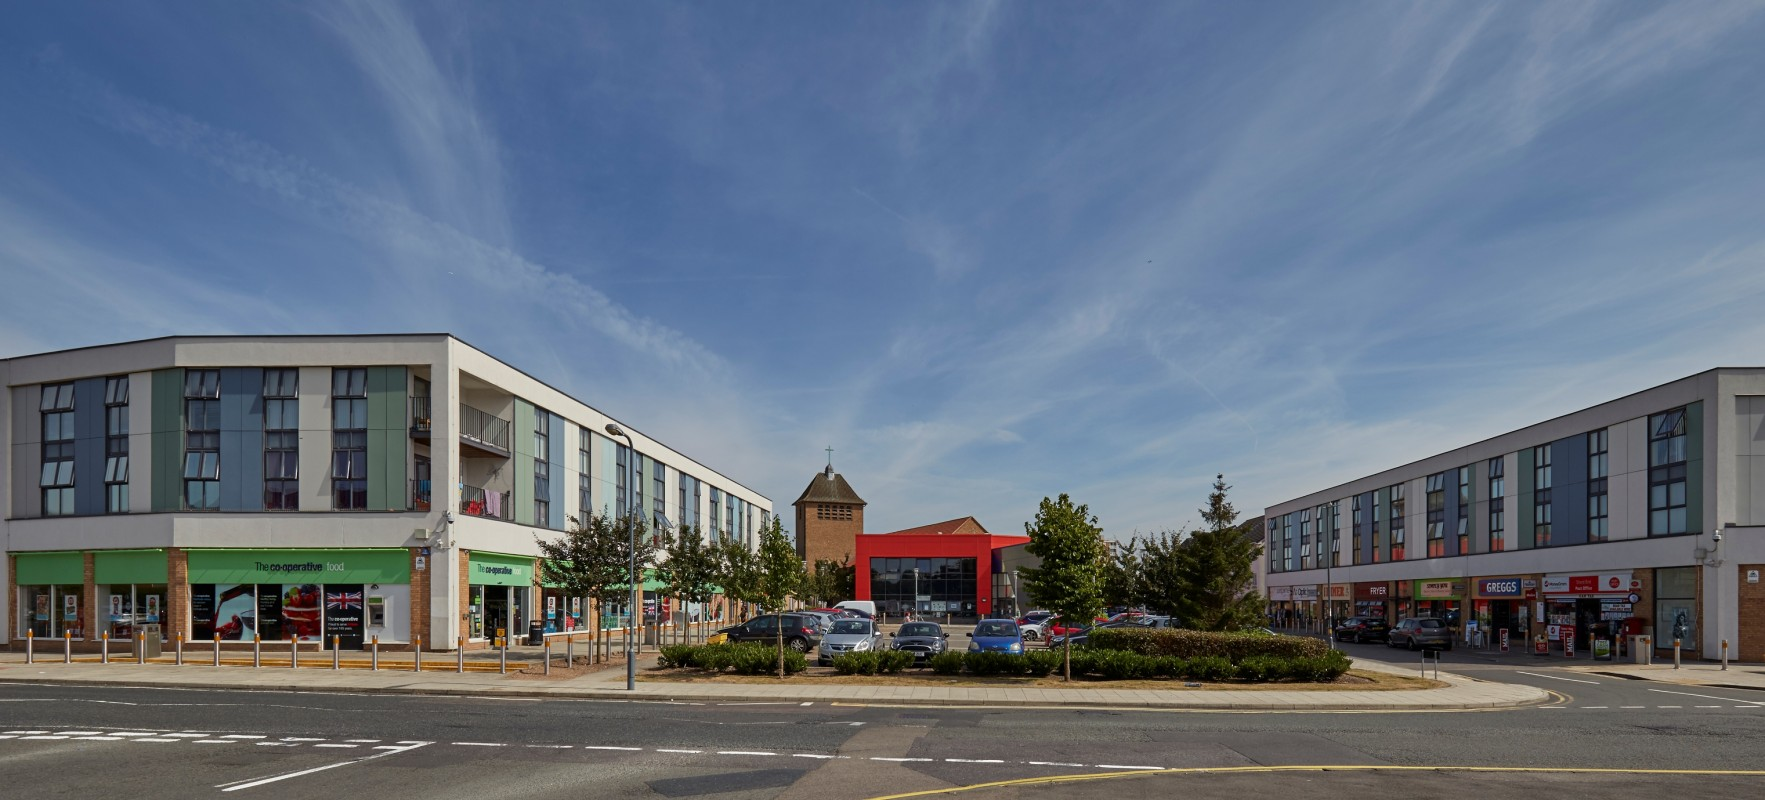 New Image for LCP SIGNS UP FINAL TENANT FOR RETAIL CENTRE